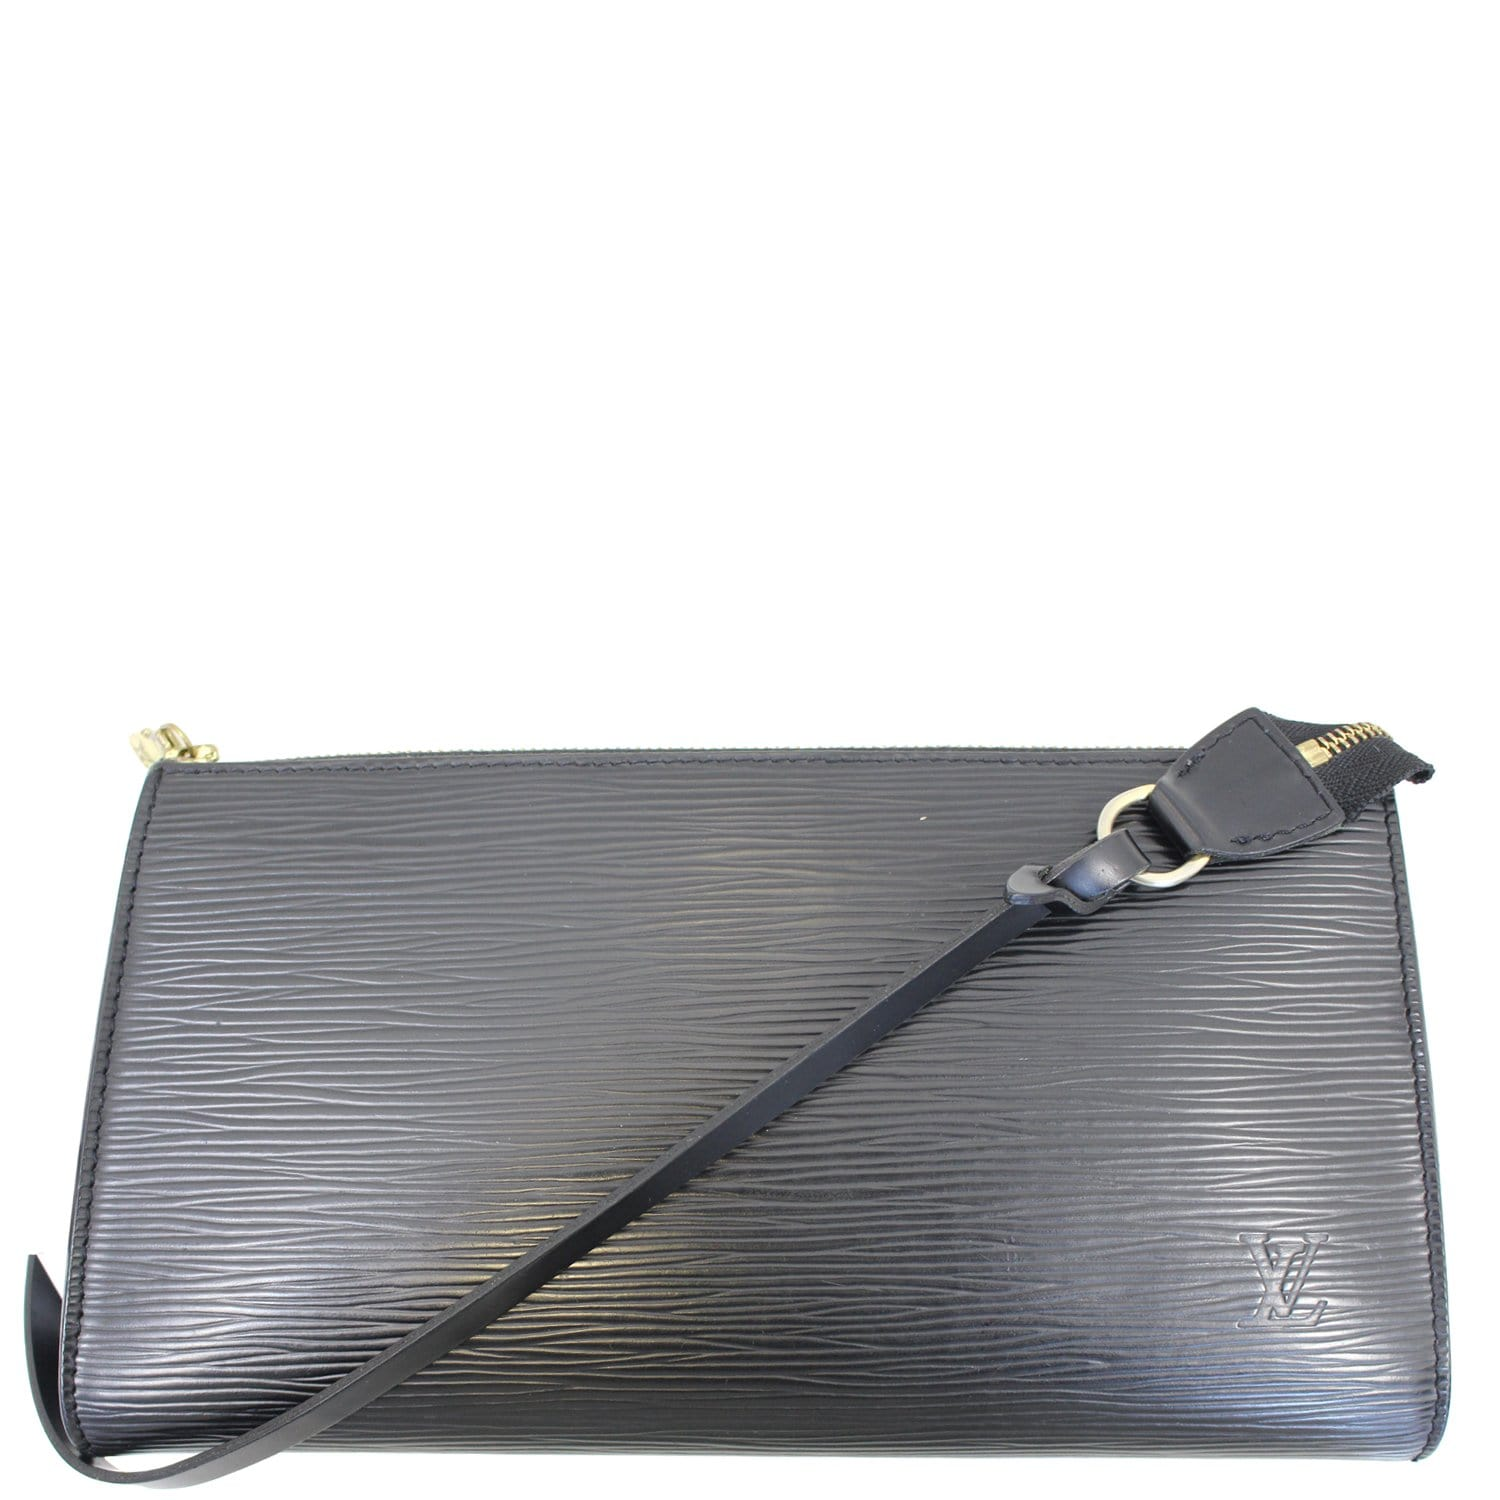 LOUIS VUITTON Pochette Accessoires Epi Leather Pouch Black-US fd300026b9